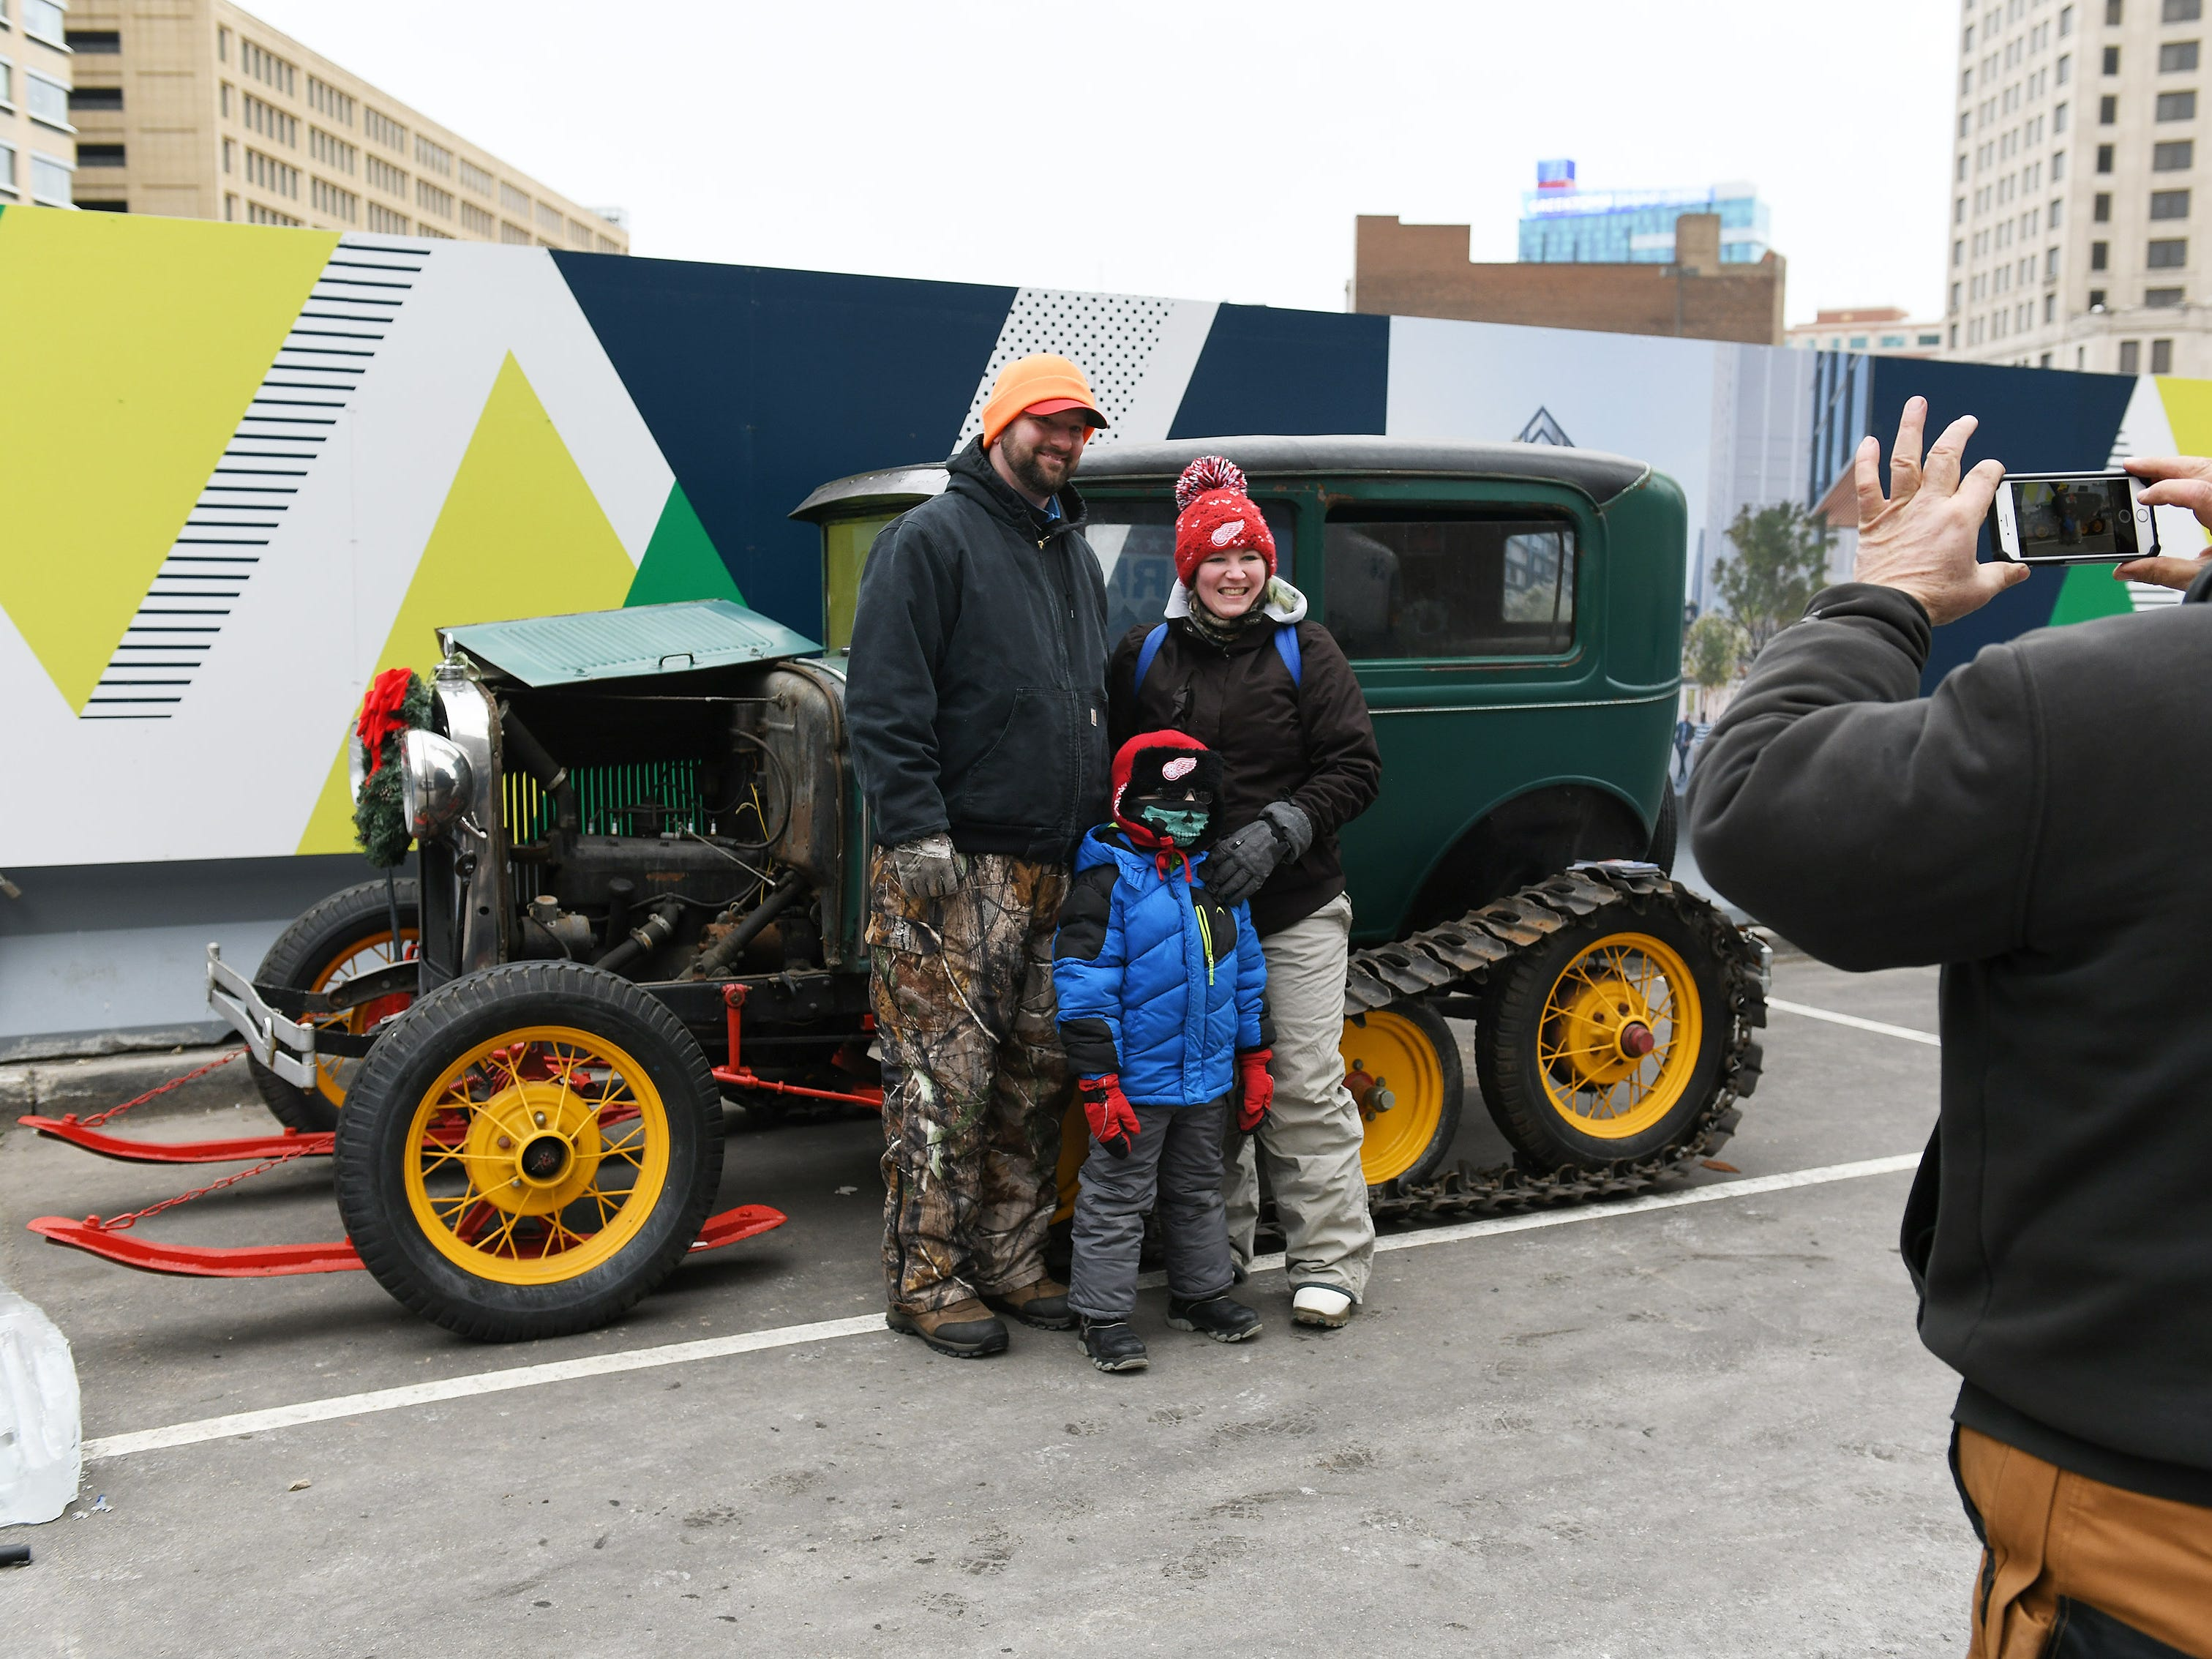 Ford Piquette Avenue Plant volunteer Randy Shelton of Dearborn takes a photo of, from left, Chris Catarino, 41, Mary Catarino, 34, and their son, Lucas, 4, with the 1930 Model A Super Snowbird conversion.